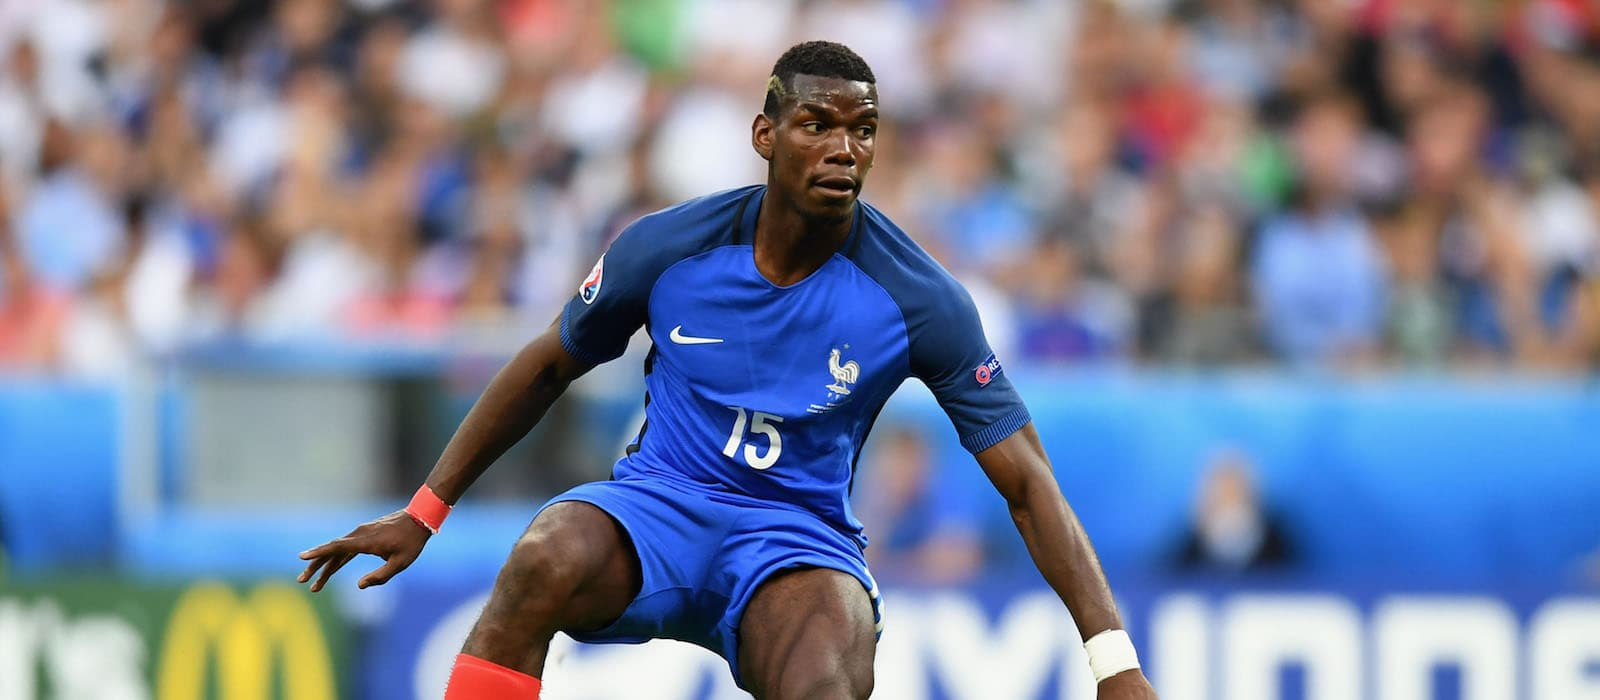 Man United transfer roundup including Pogba, Wilson and Bohui